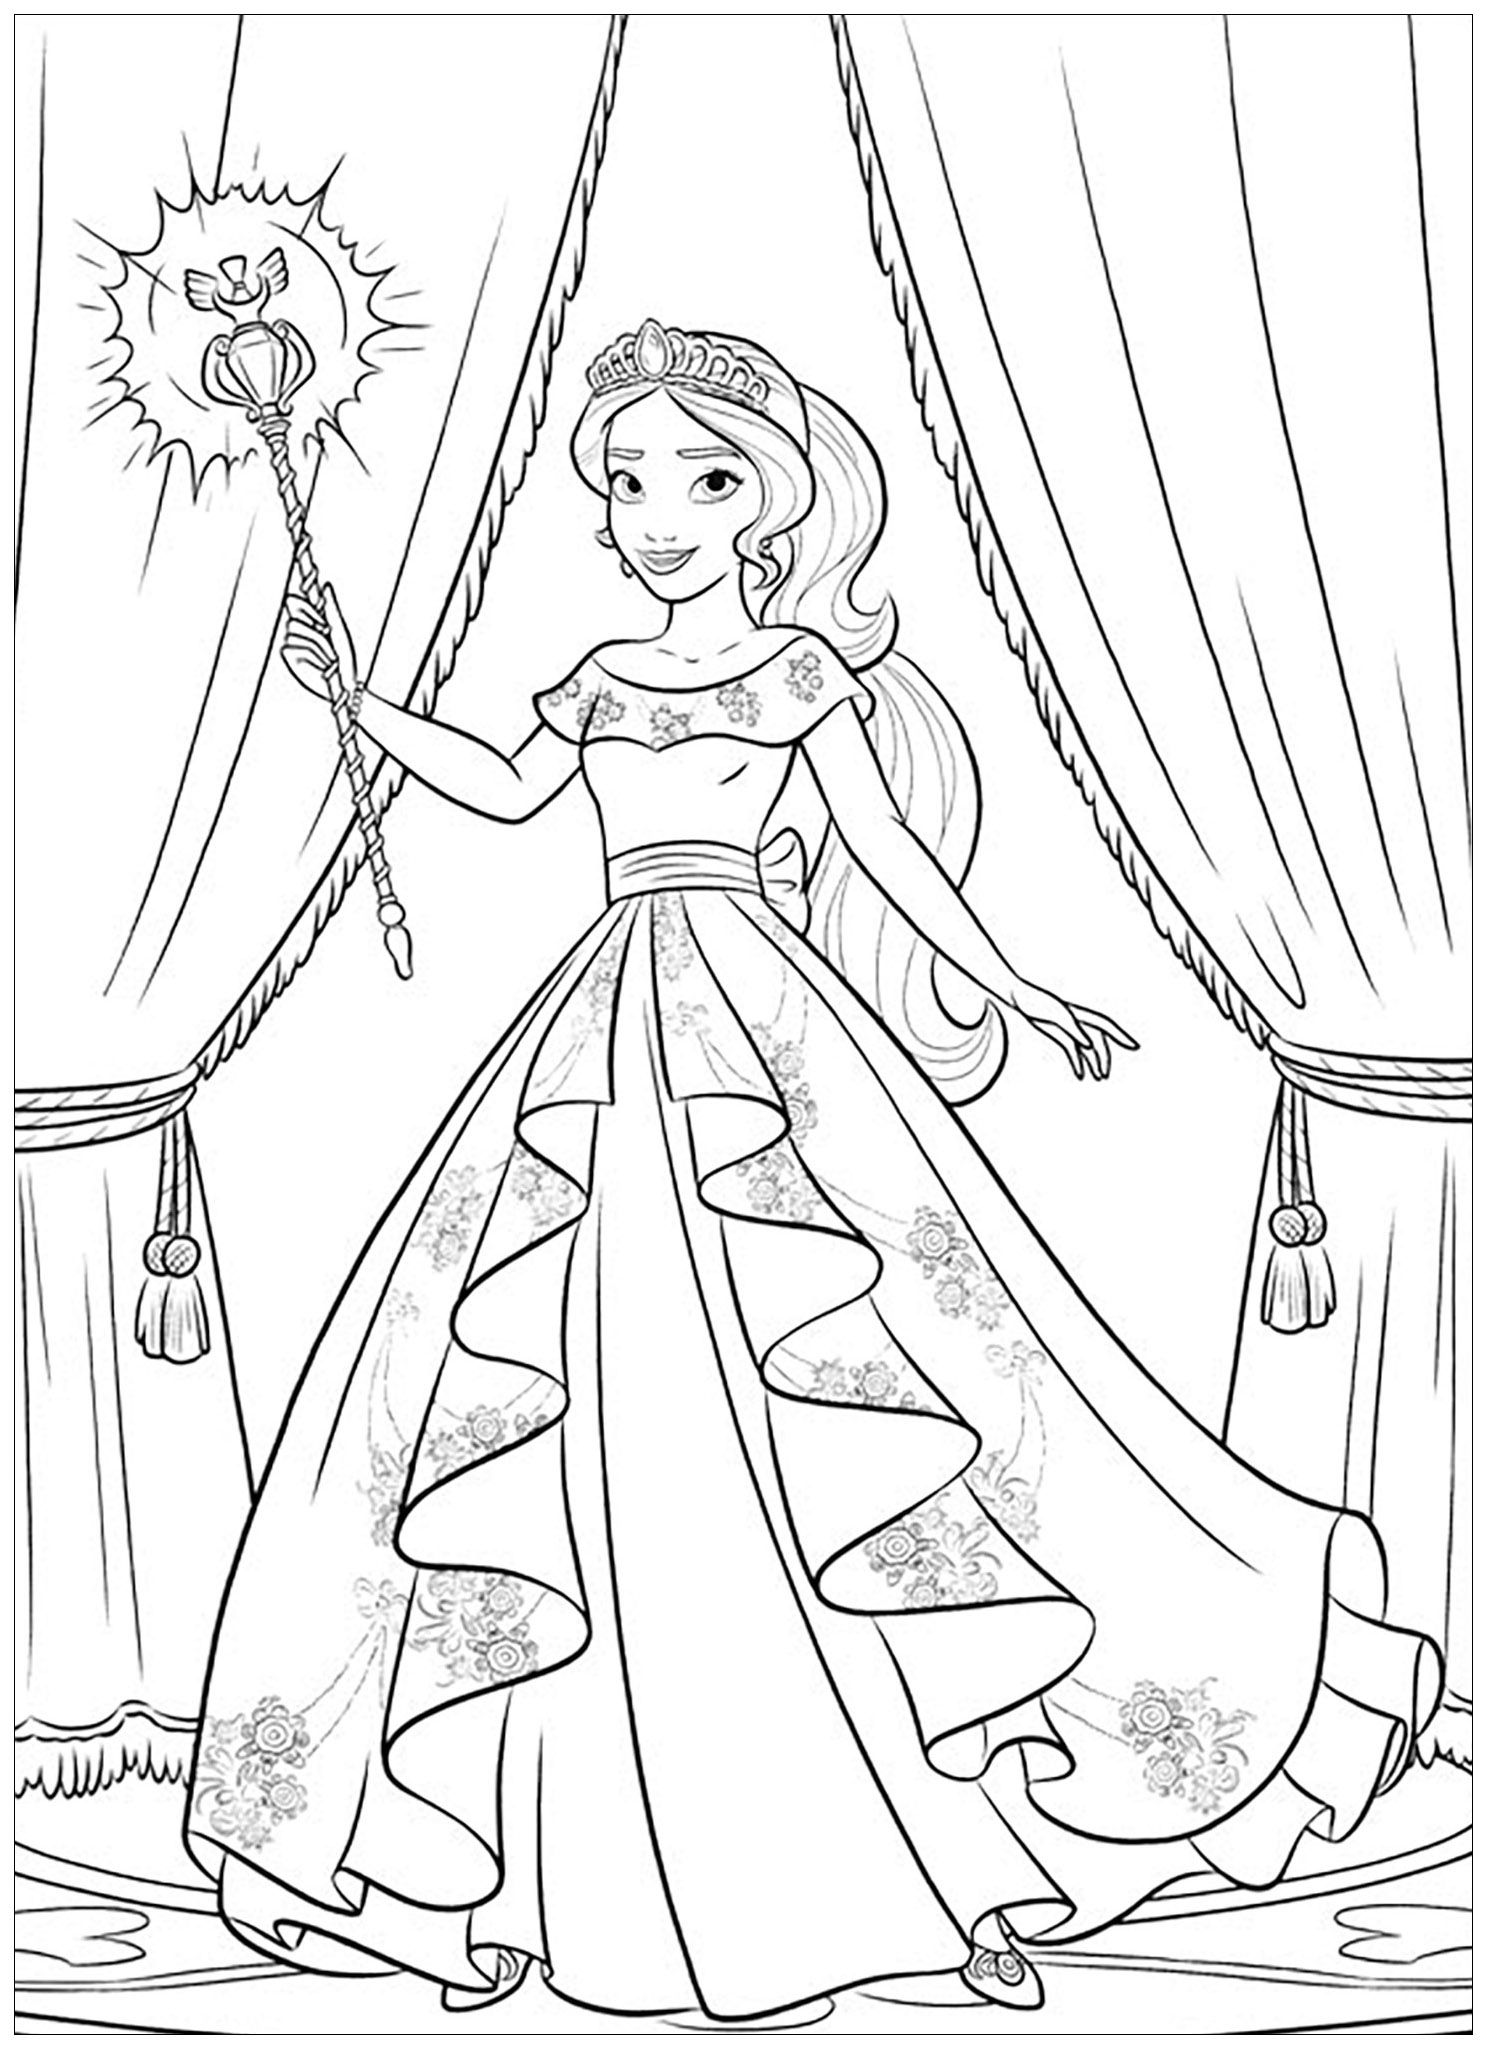 Grab Your Fresh Coloring Pages Elena Of Avalor For You Https Gethighit Com Fresh Disney Coloring Pages Disney Princess Coloring Pages Barbie Coloring Pages